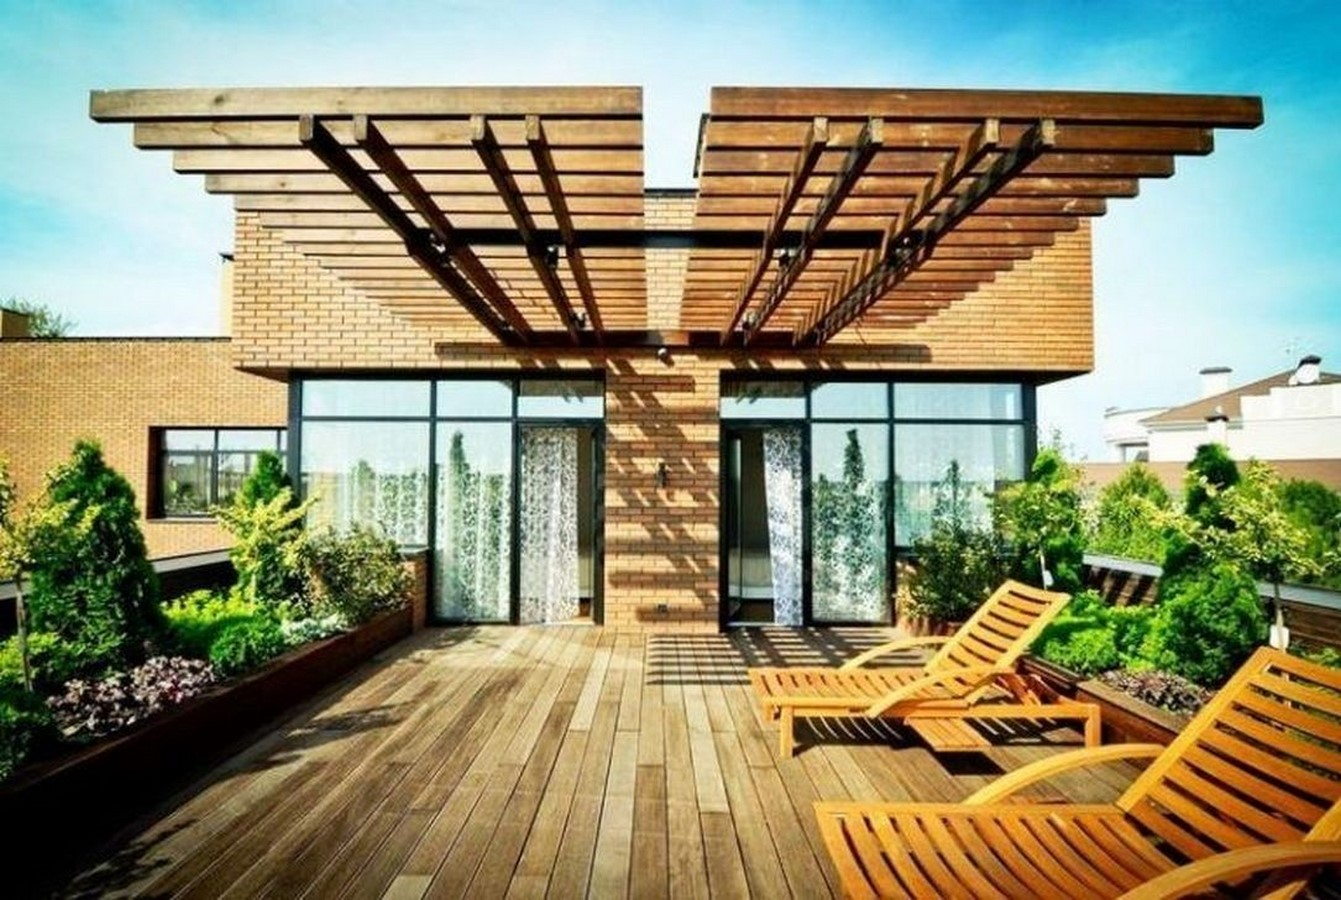 10 things to remember when designing rooftop gardens - Sheet17